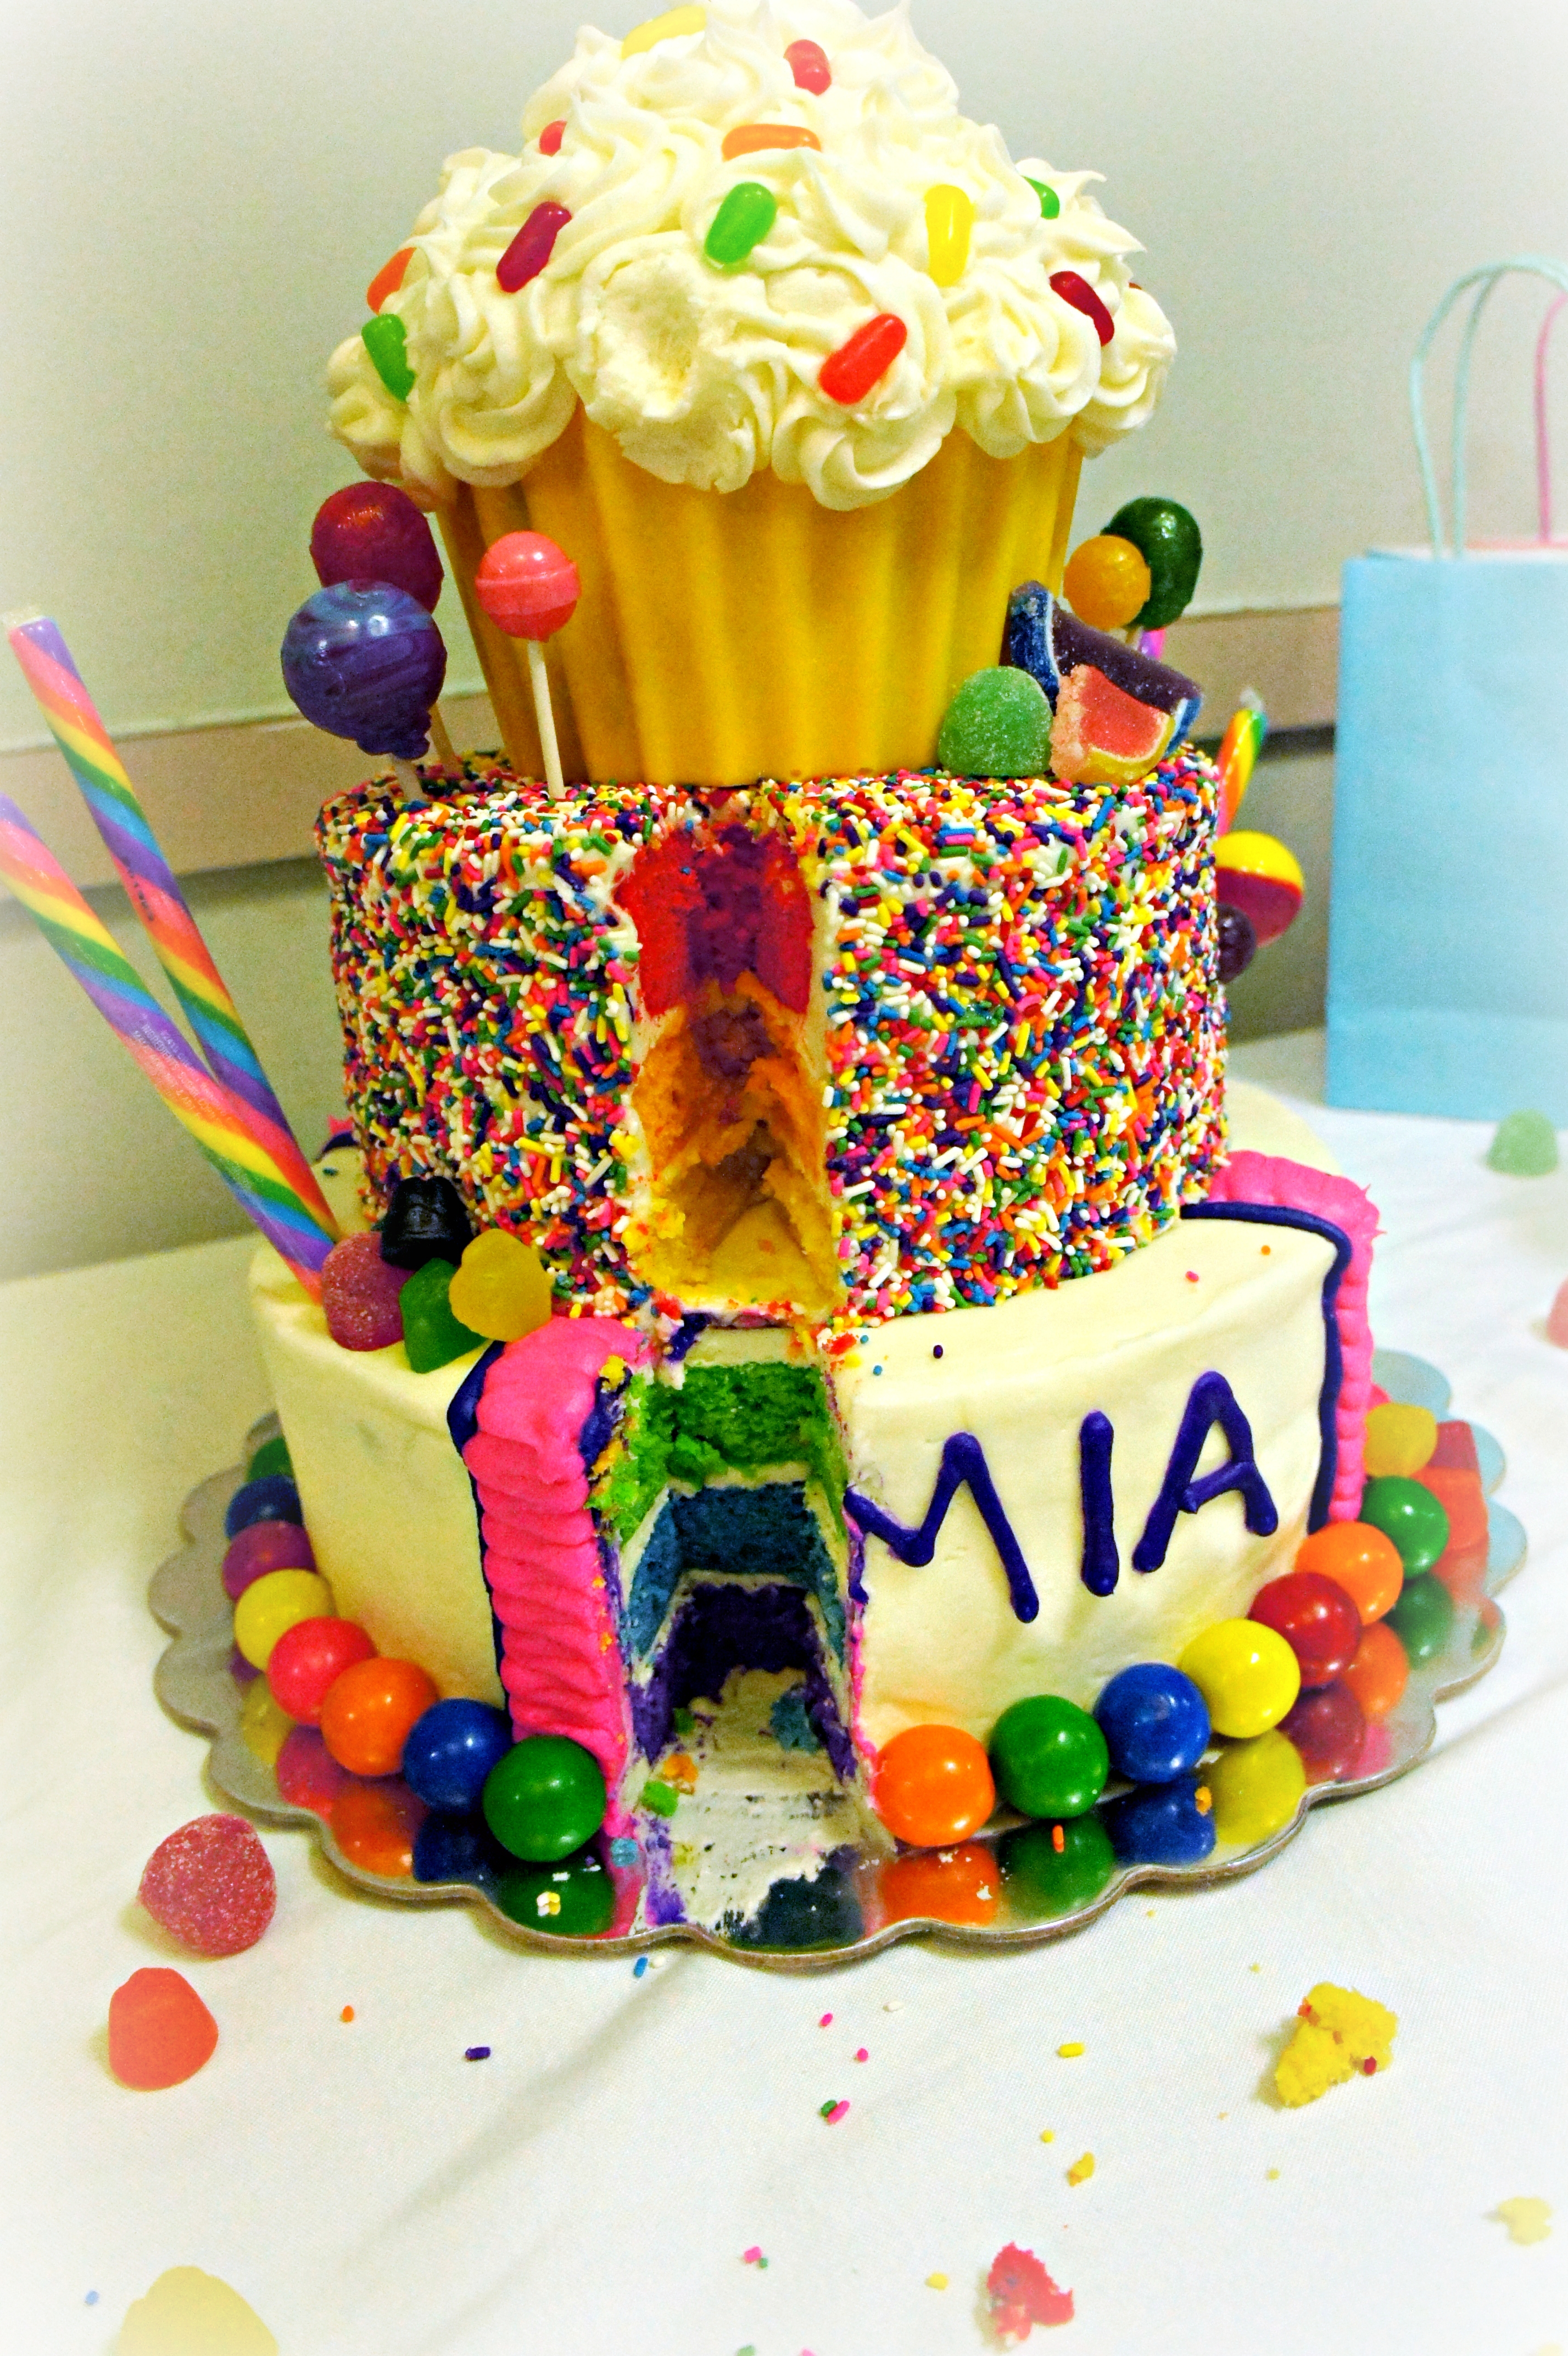 Chocolate Cake Decorated With Candy